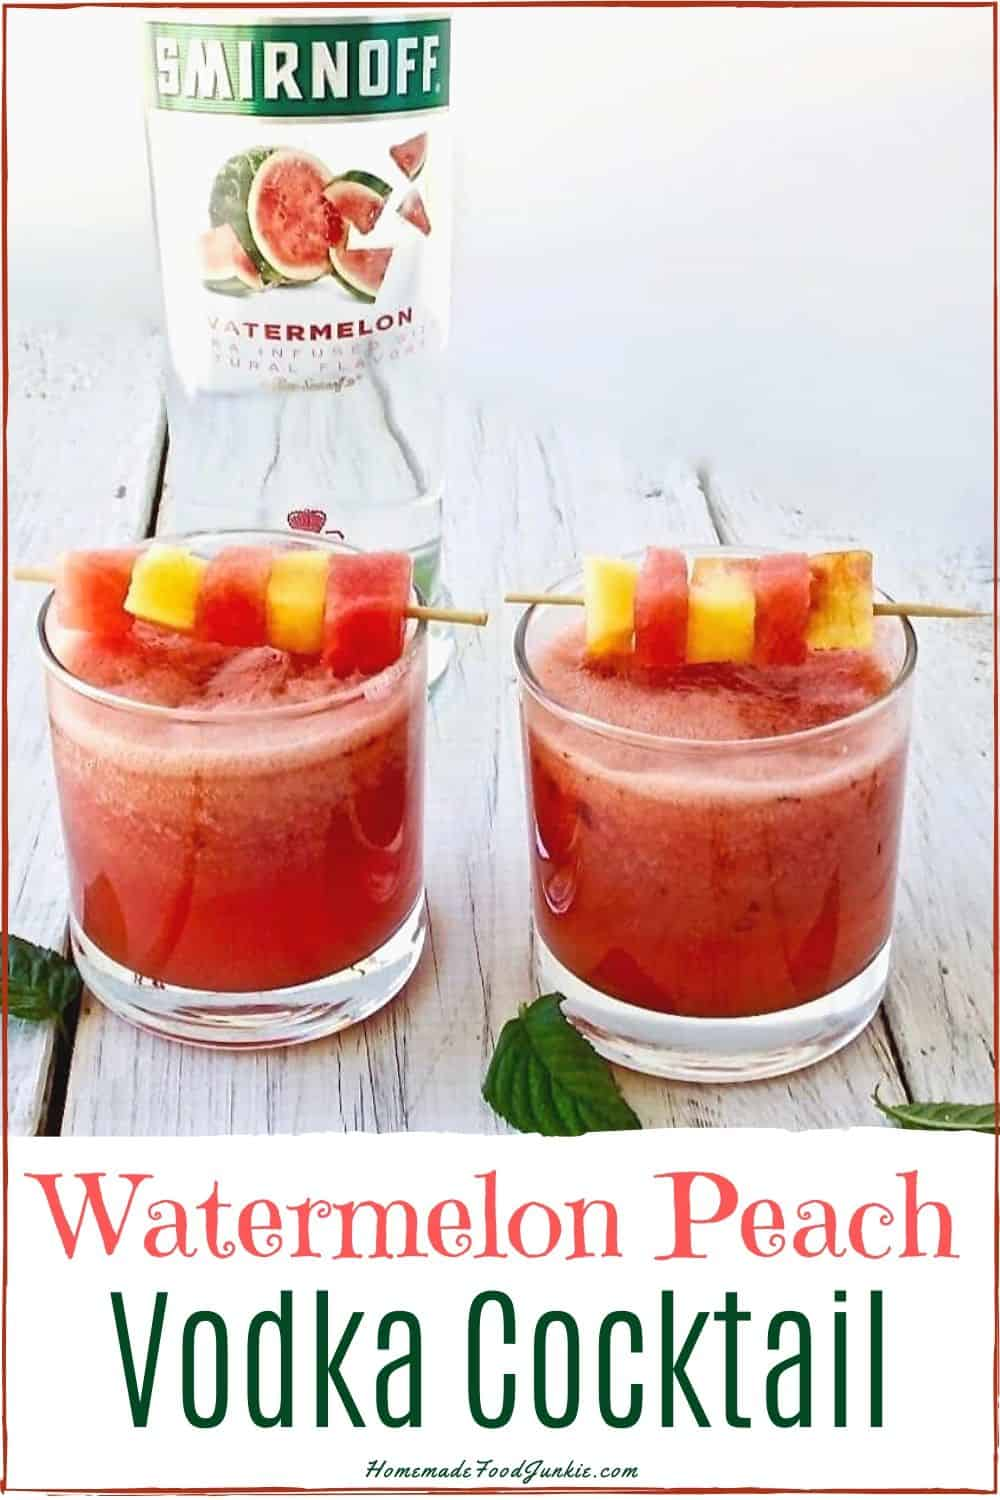 Watermelon Peach Vodka Cocktail-pin image